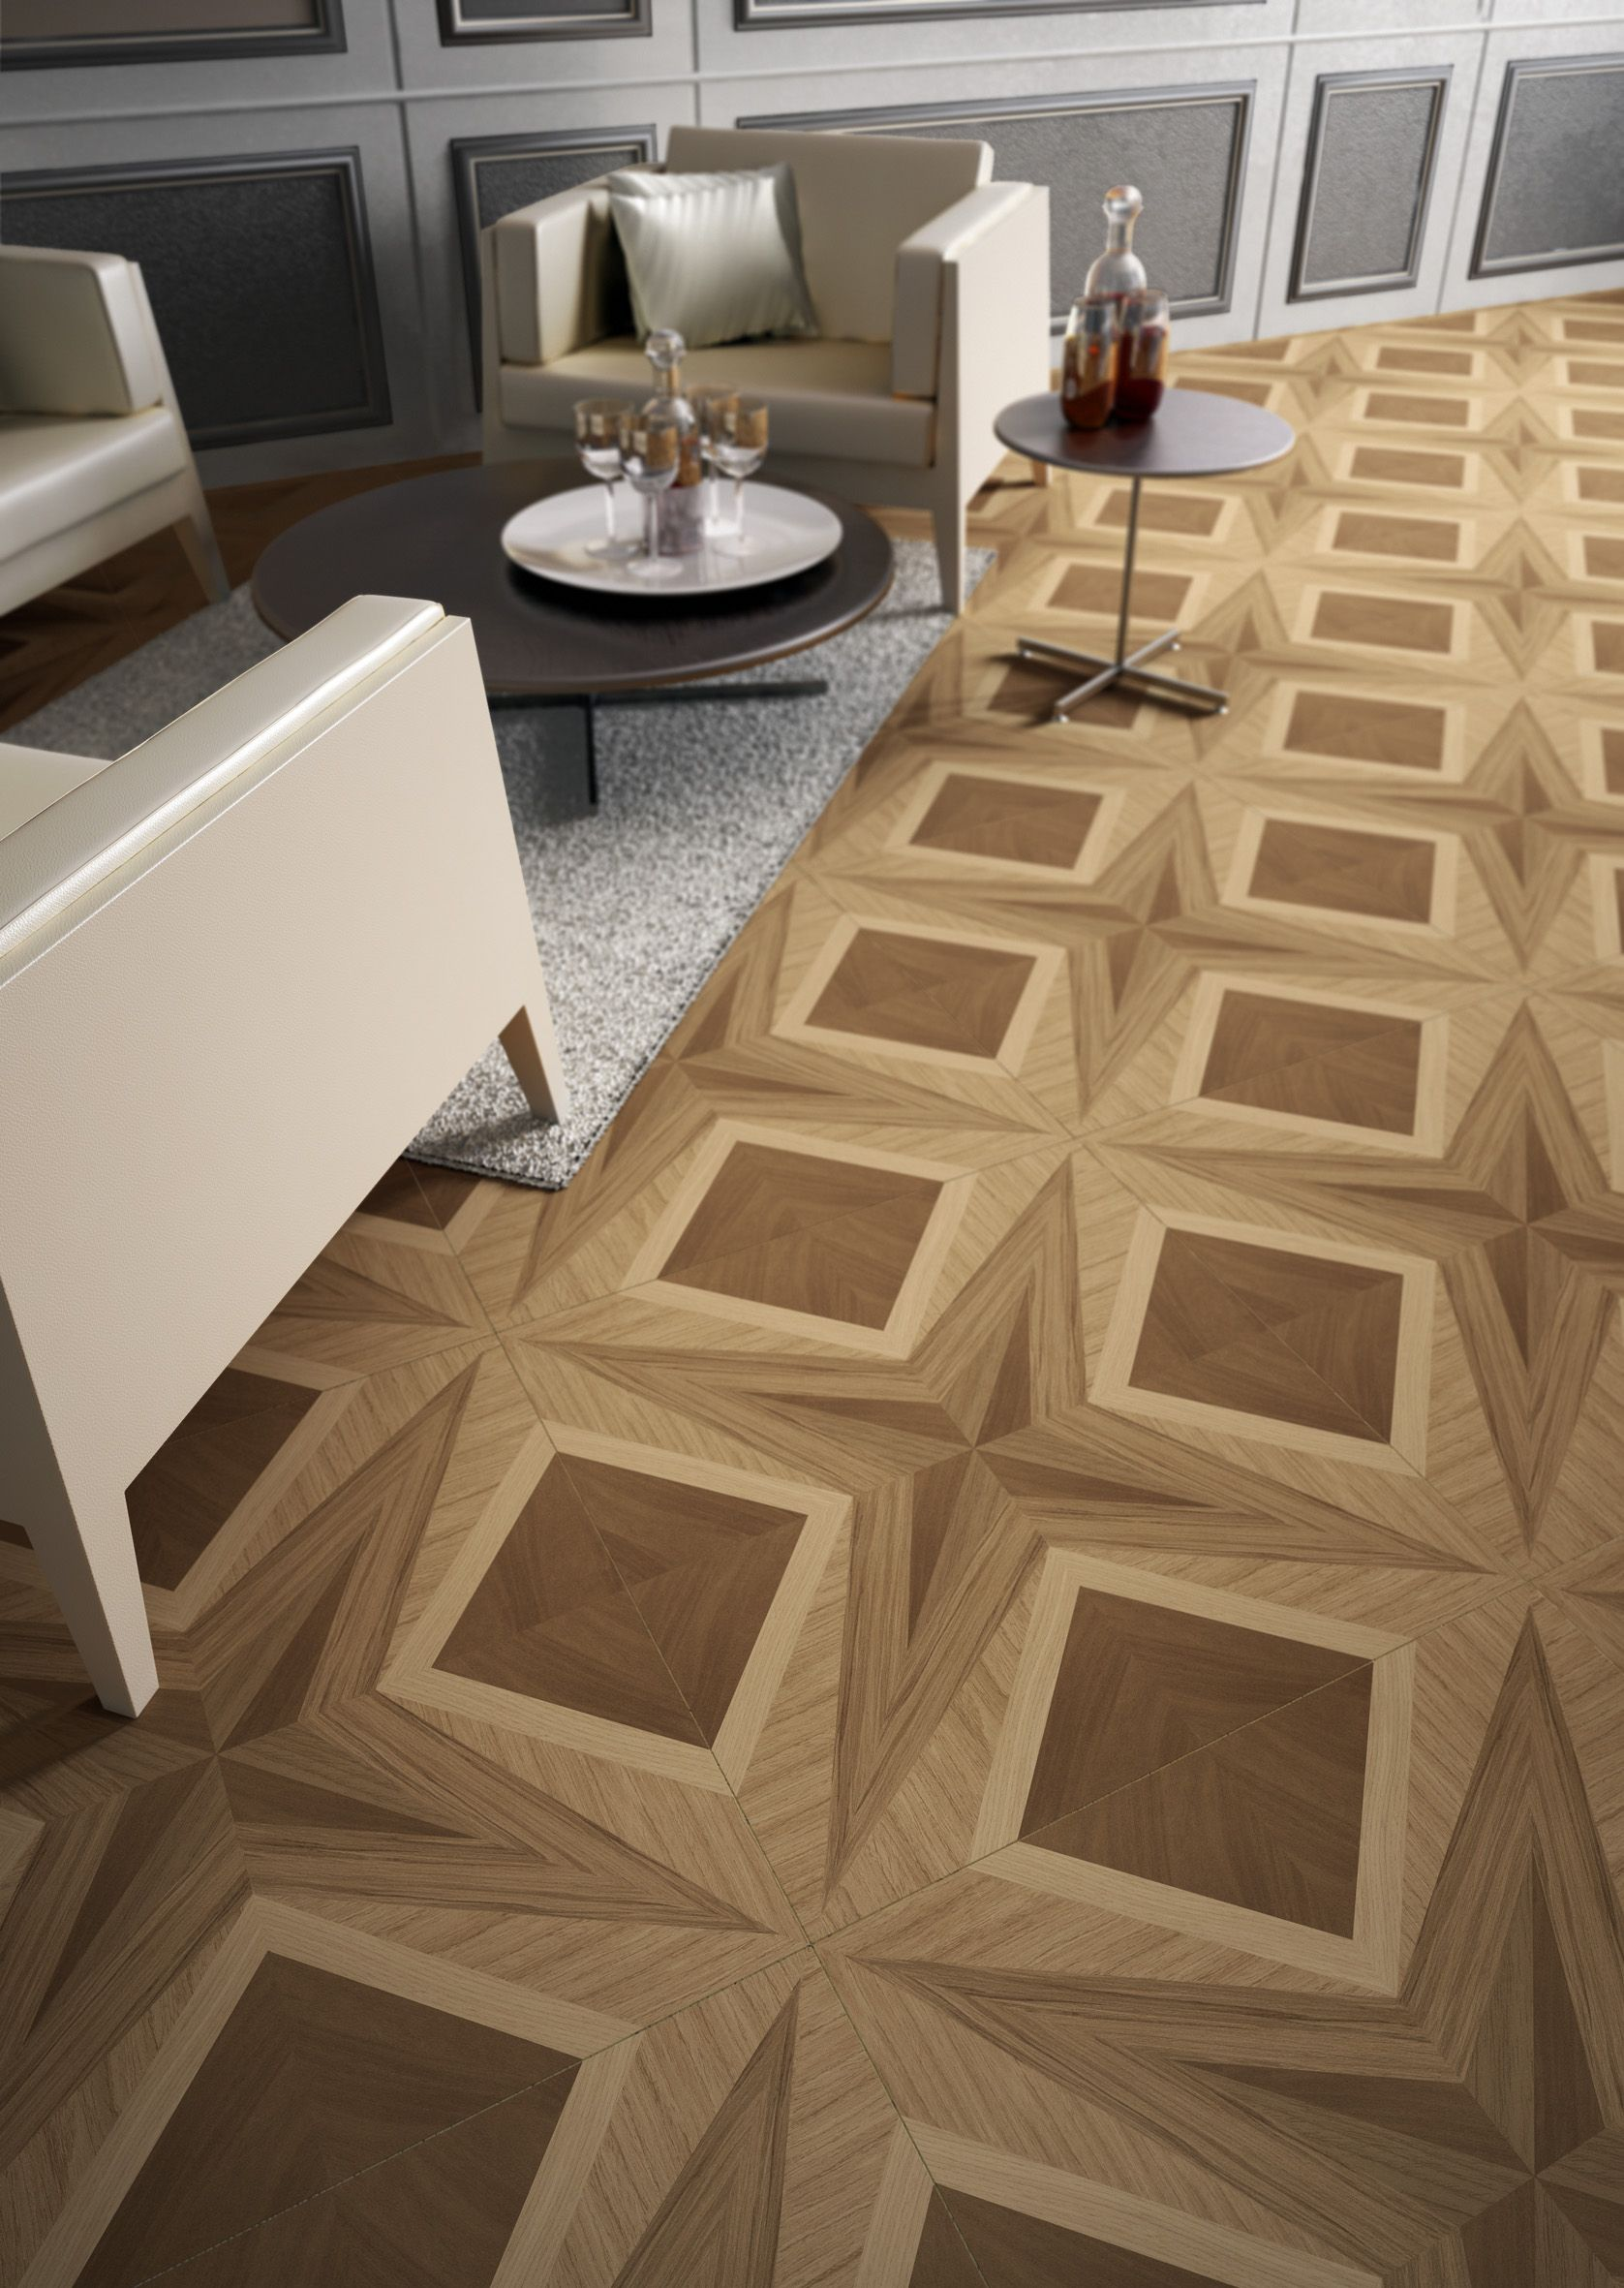 Tile Space View A Product Wooden Floor Tiles Floor Design